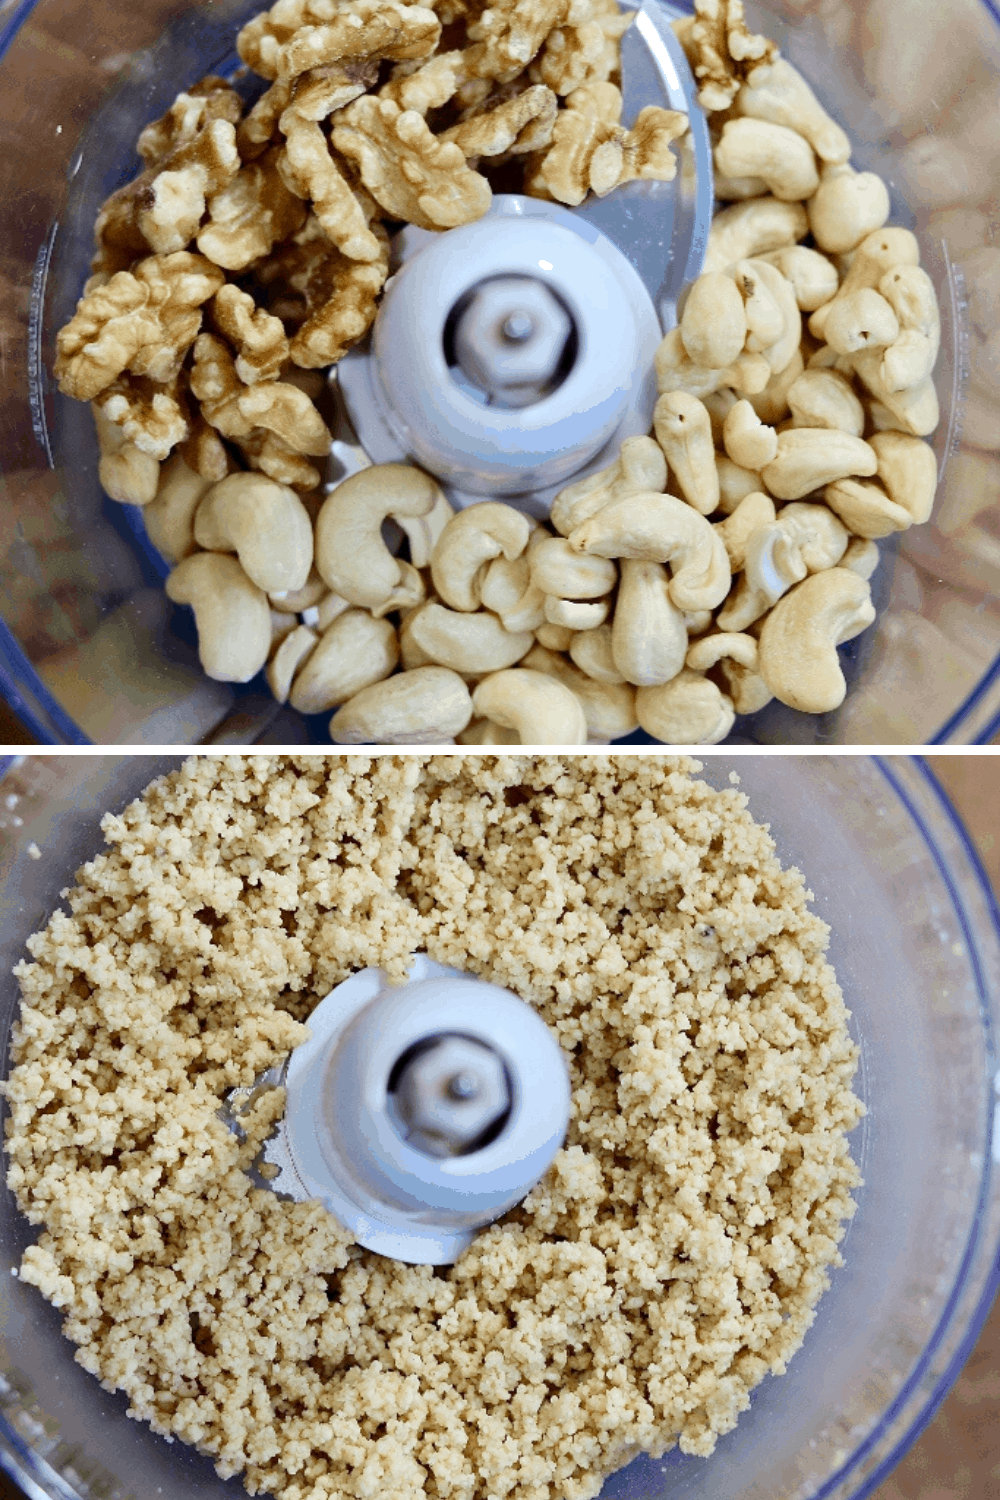 walnuts and cashews in a food processor